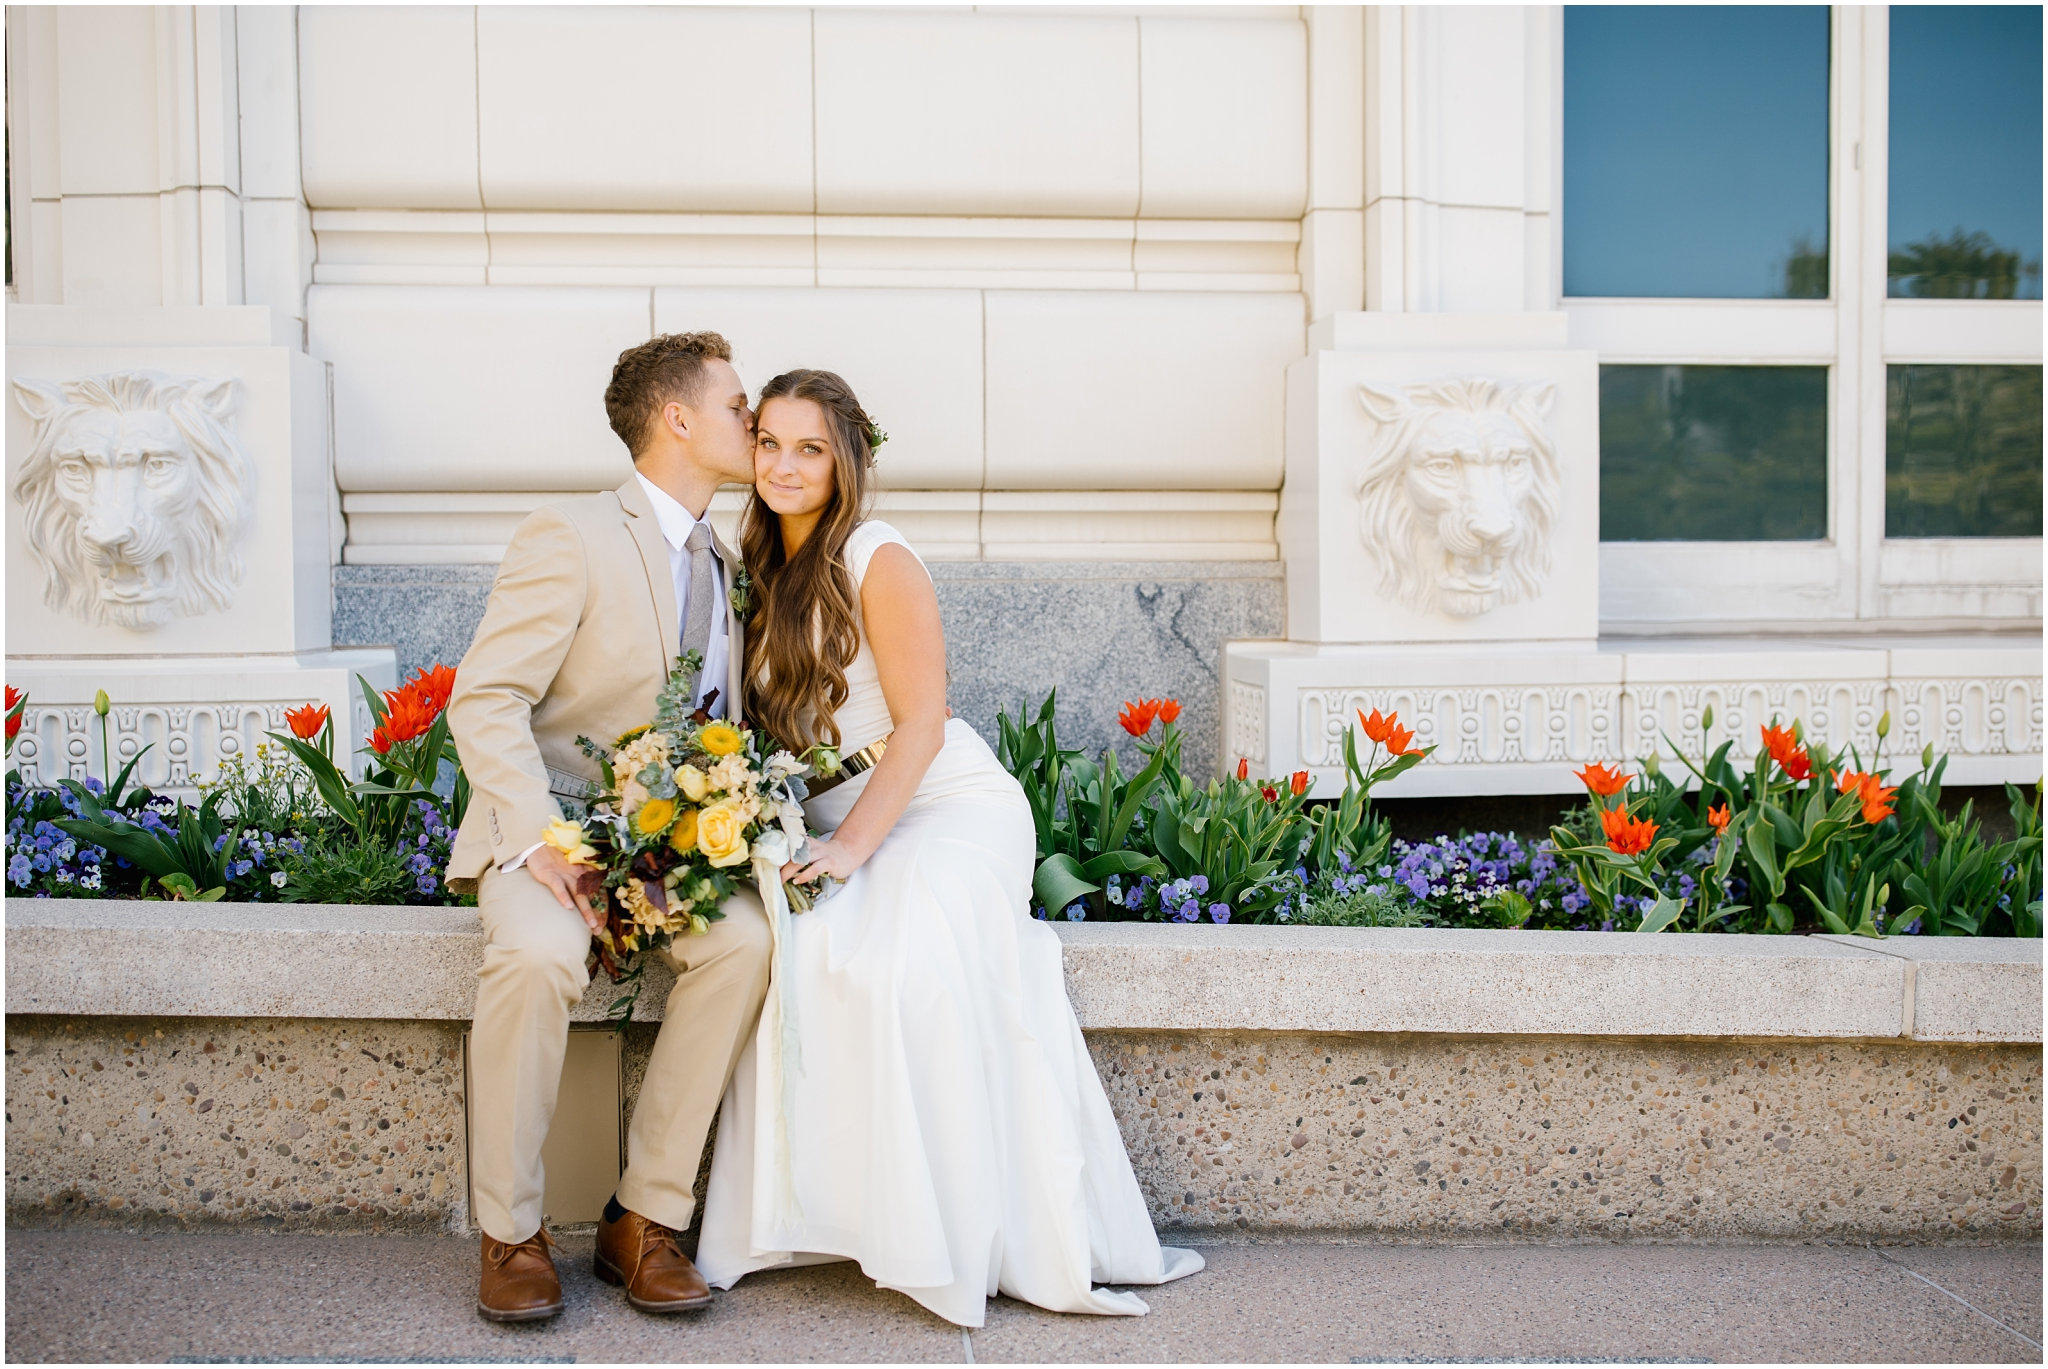 JC-Wedding-214_Lizzie-B-Imagery-Utah-Wedding-Photographer-Salt-Lake-City-Temple-Joseph-Smith-Memorial-Building-Reception.jpg